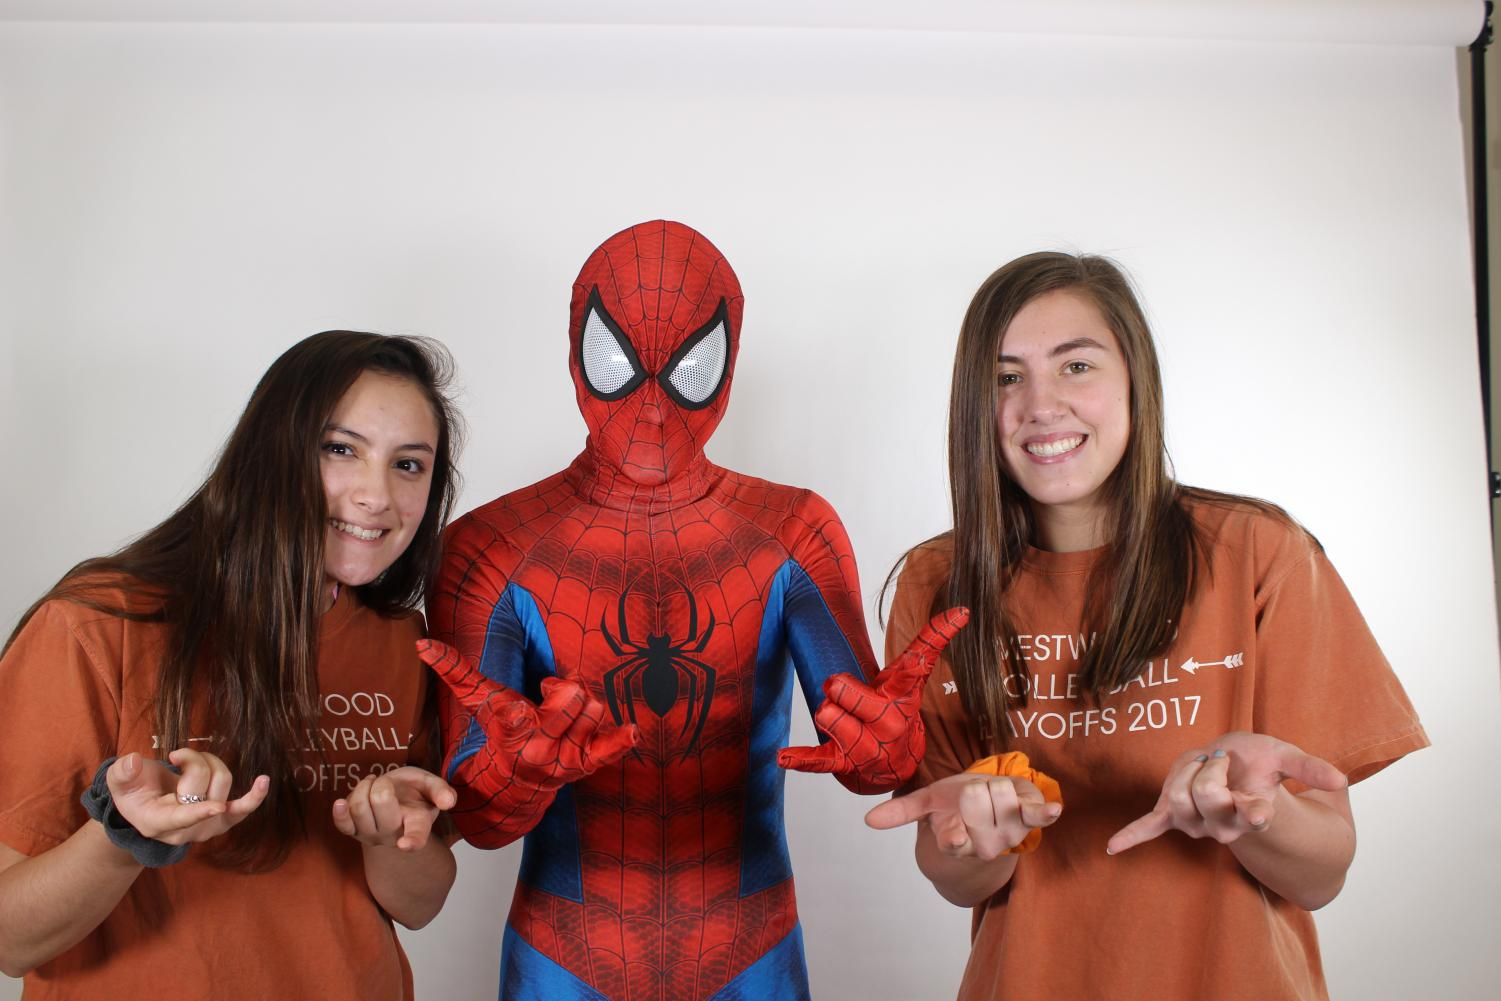 Celeste+Palomino+%2721+and+Lauren+Wood+%2721+pose+with+Spider-Man.